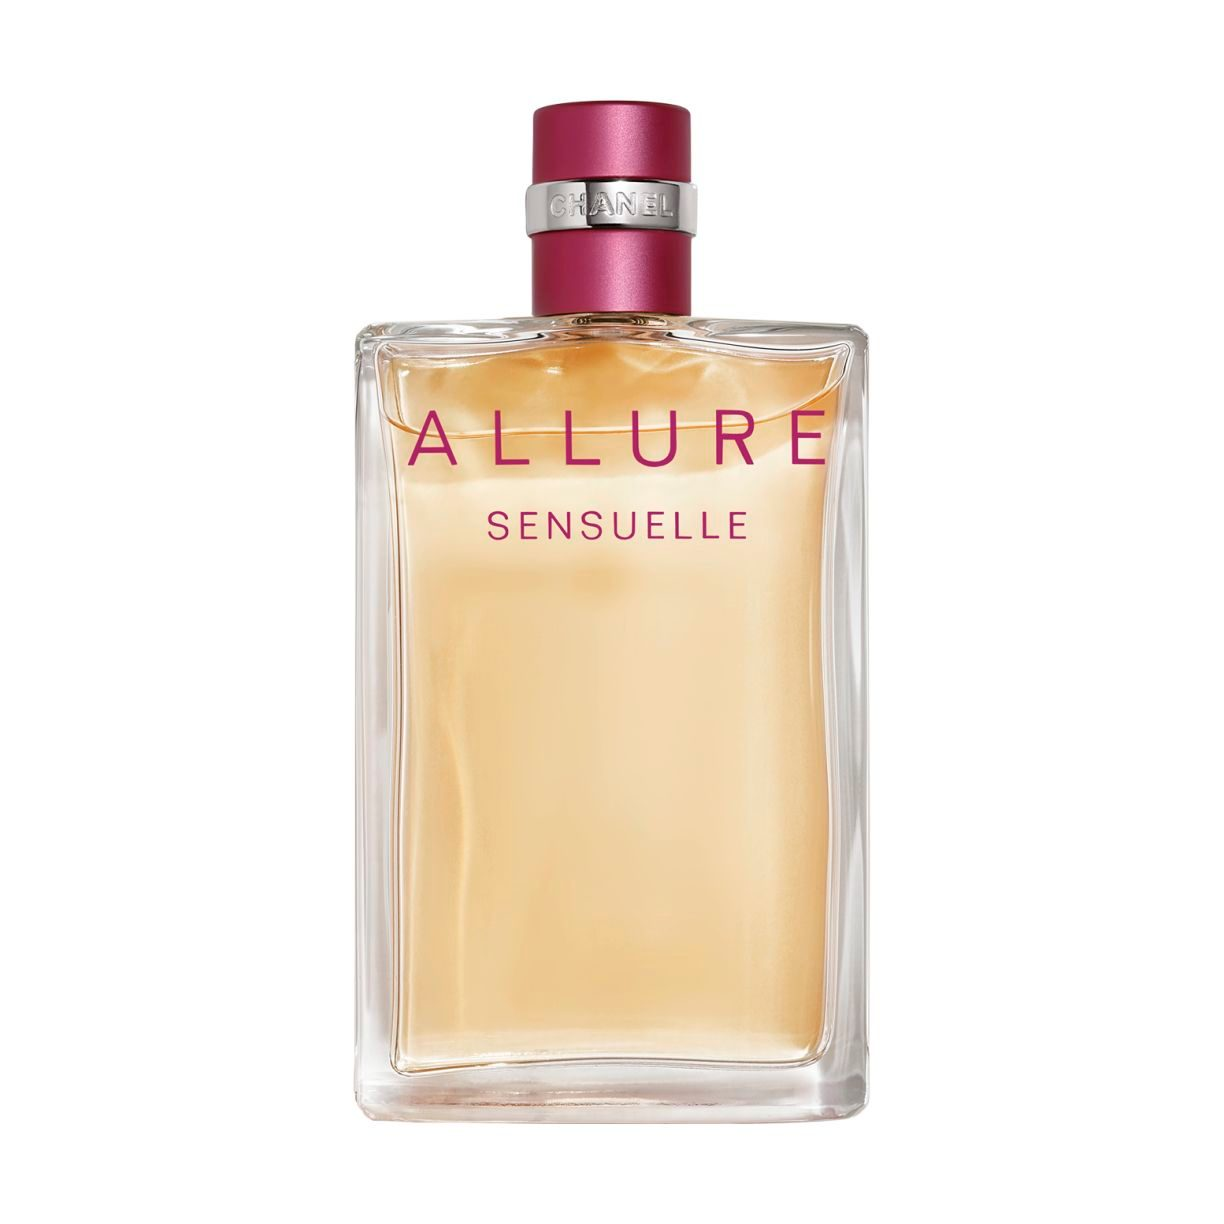 ALLURE SENSUELLE EAU DE TOILETTE SPRAY